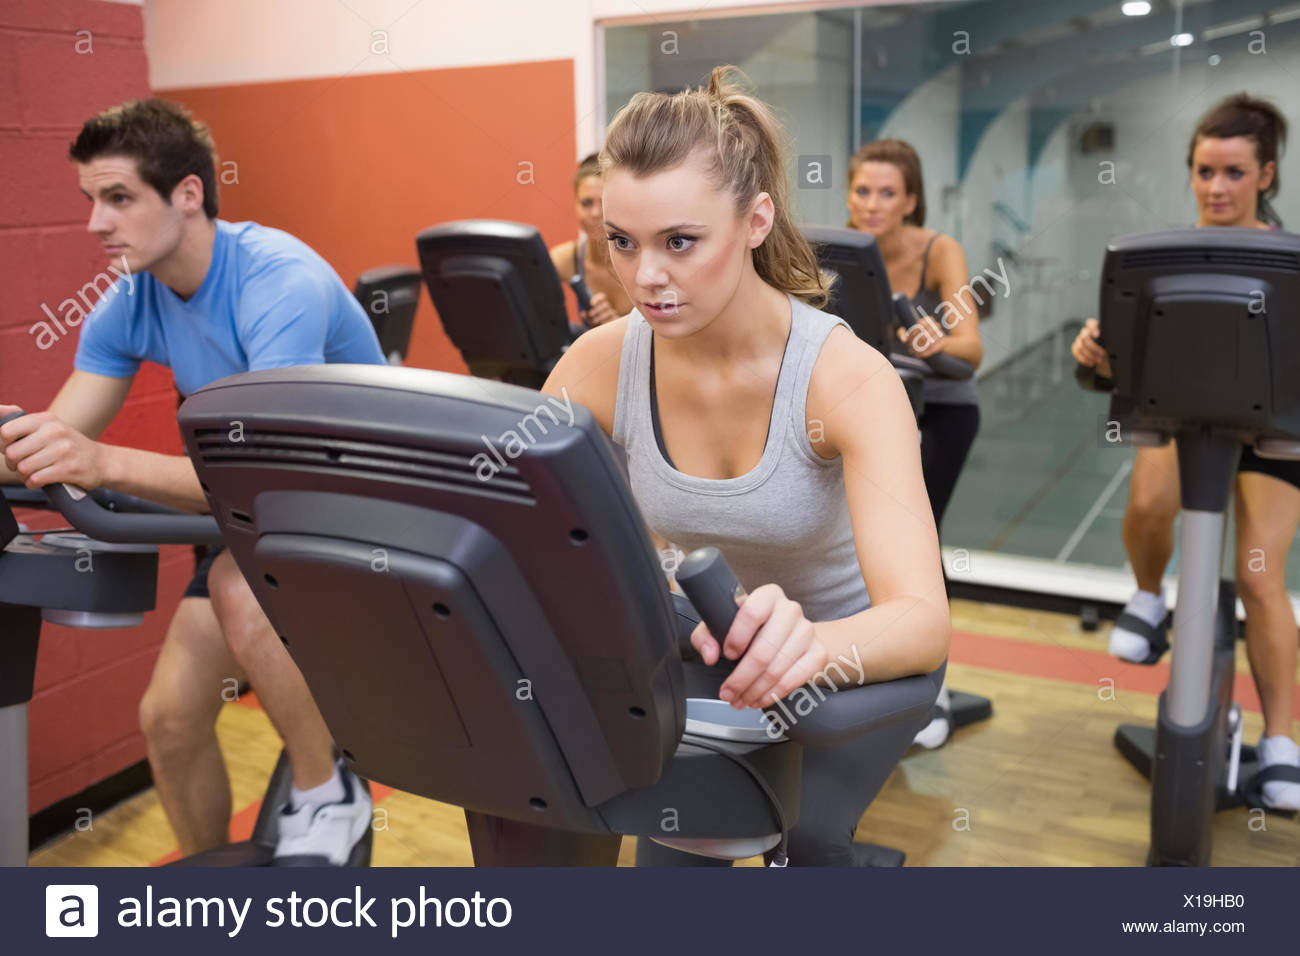 People working out at spinning class Stock Photo